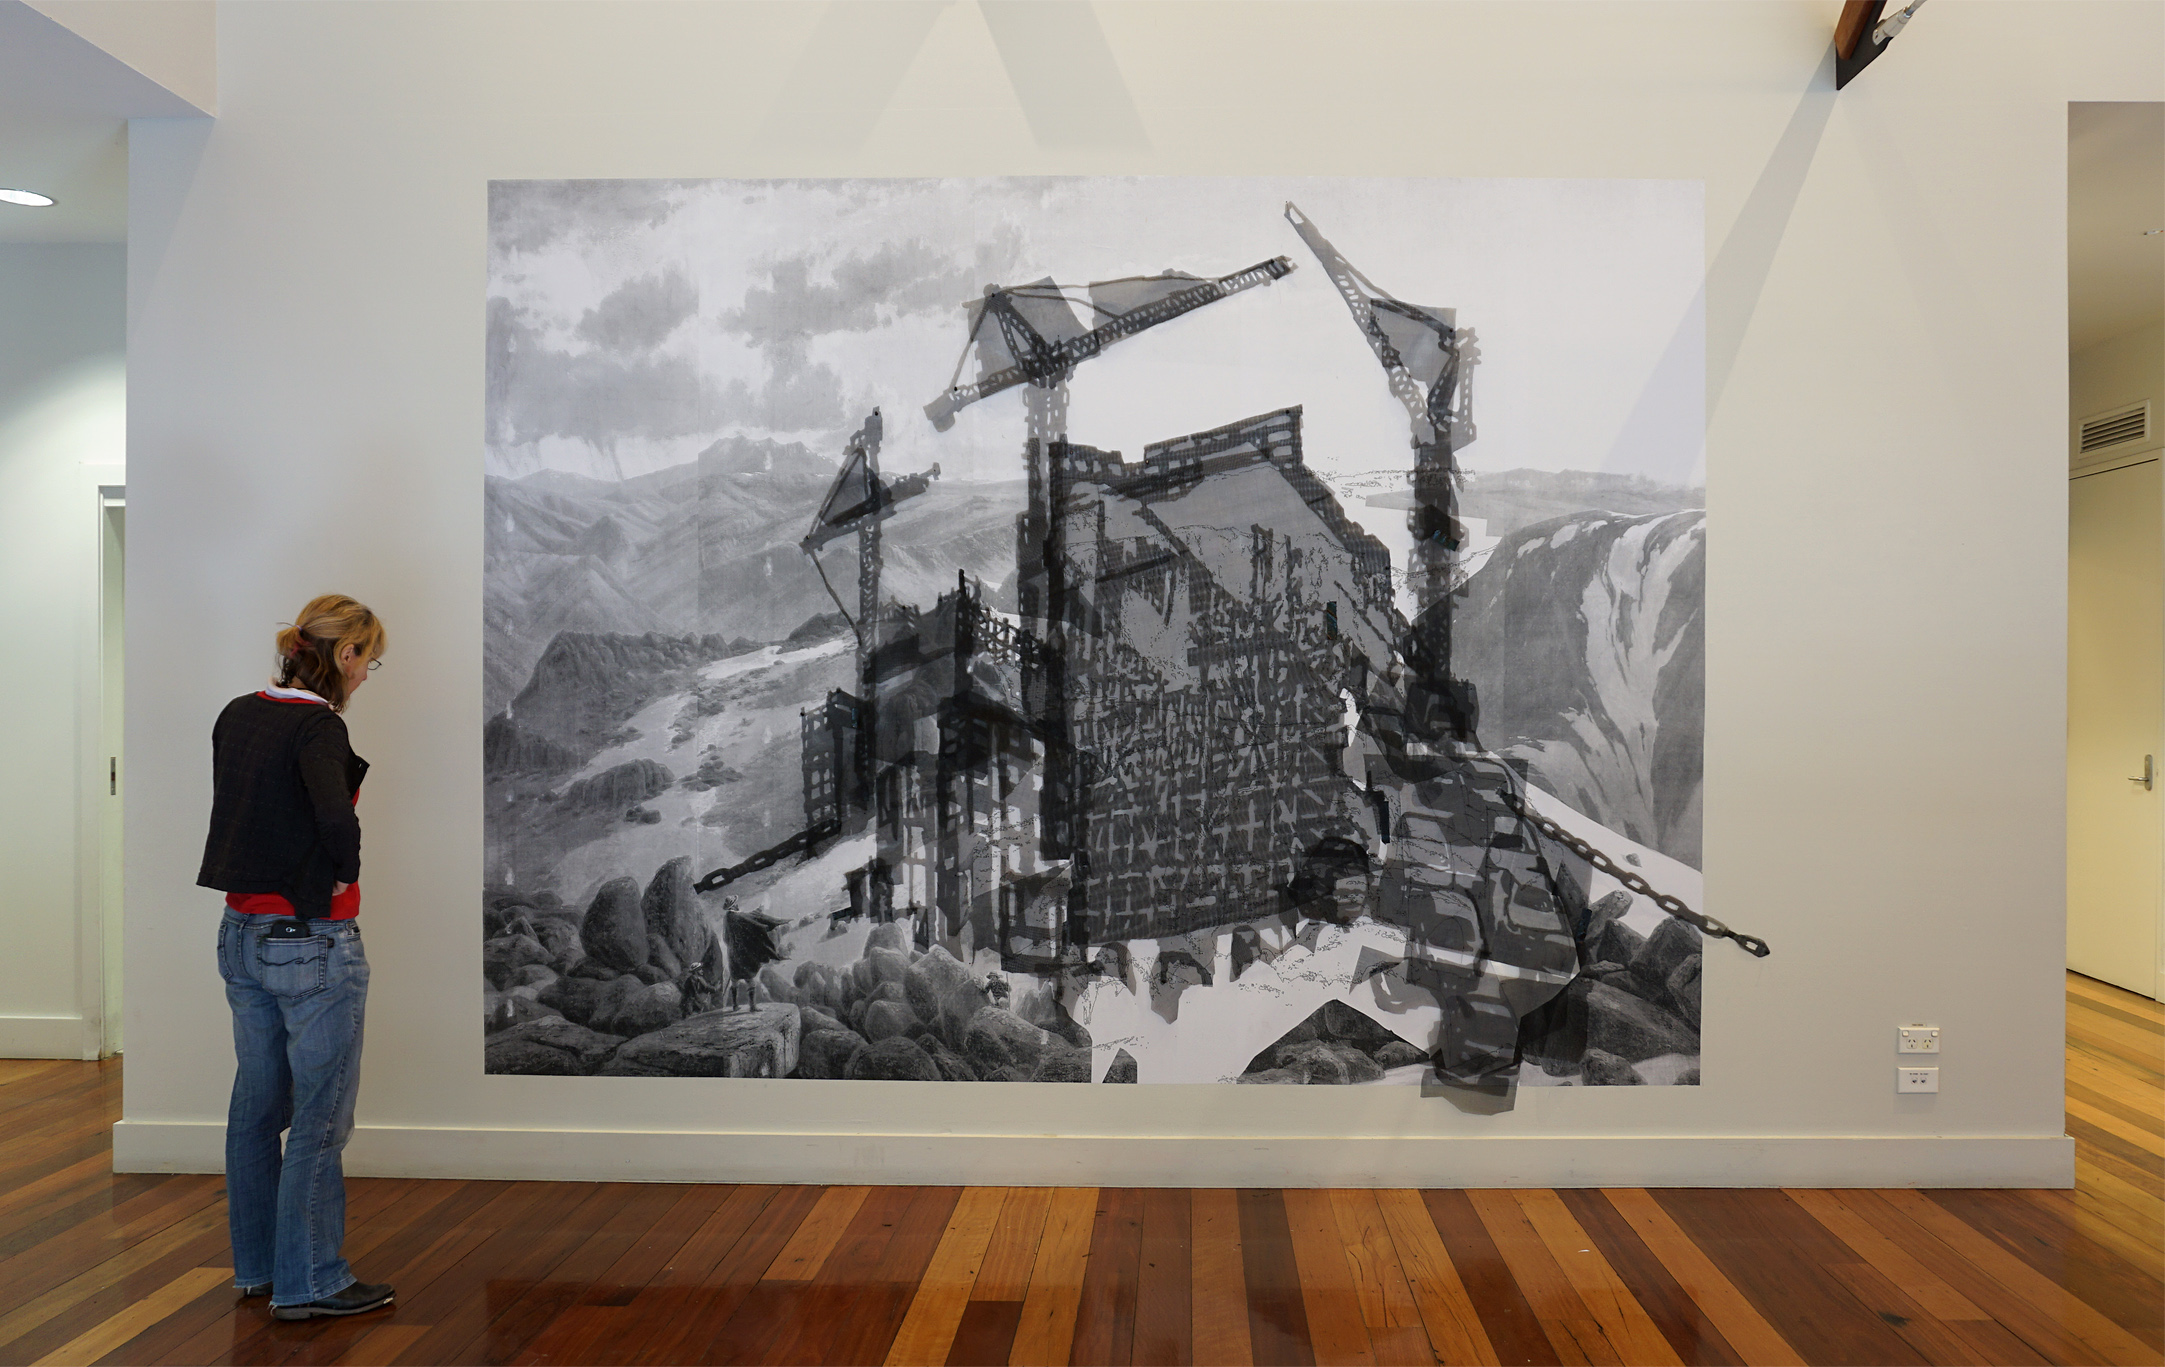 Proposition for a Panorama… Hazelhurst Art on Paper